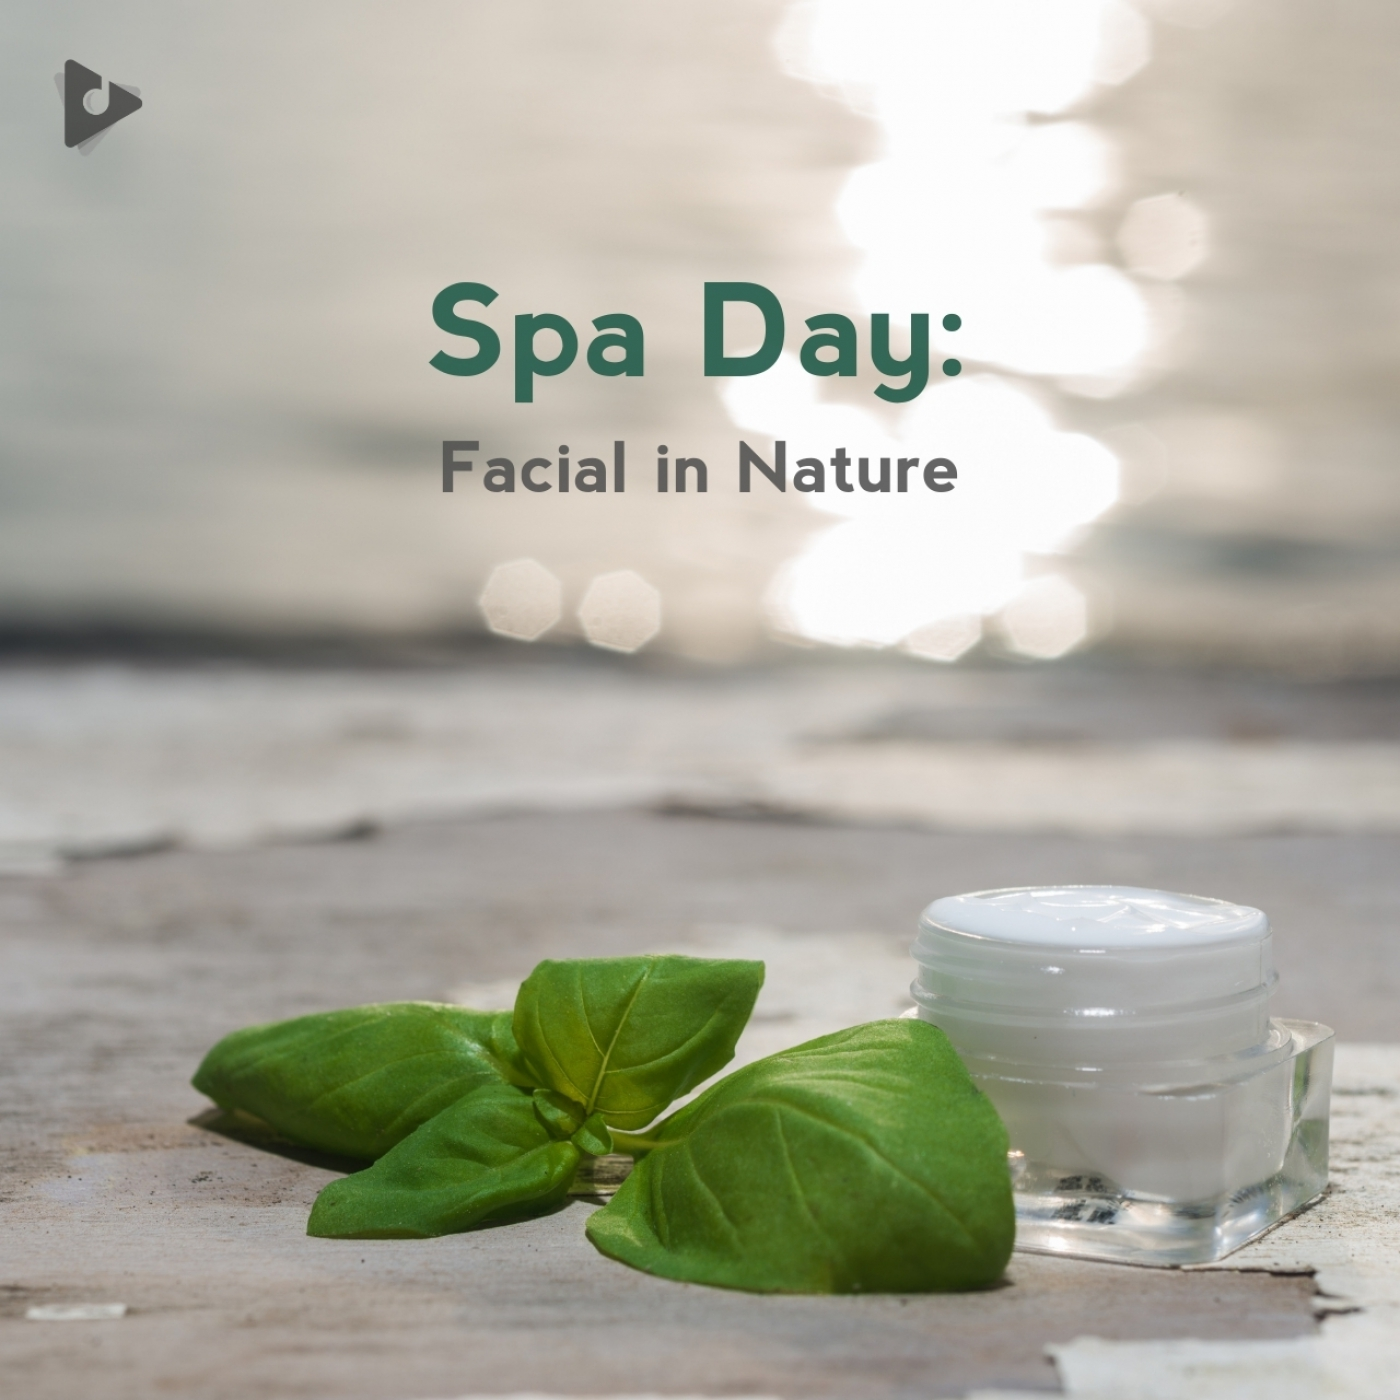 Spa Day: Facial in Nature